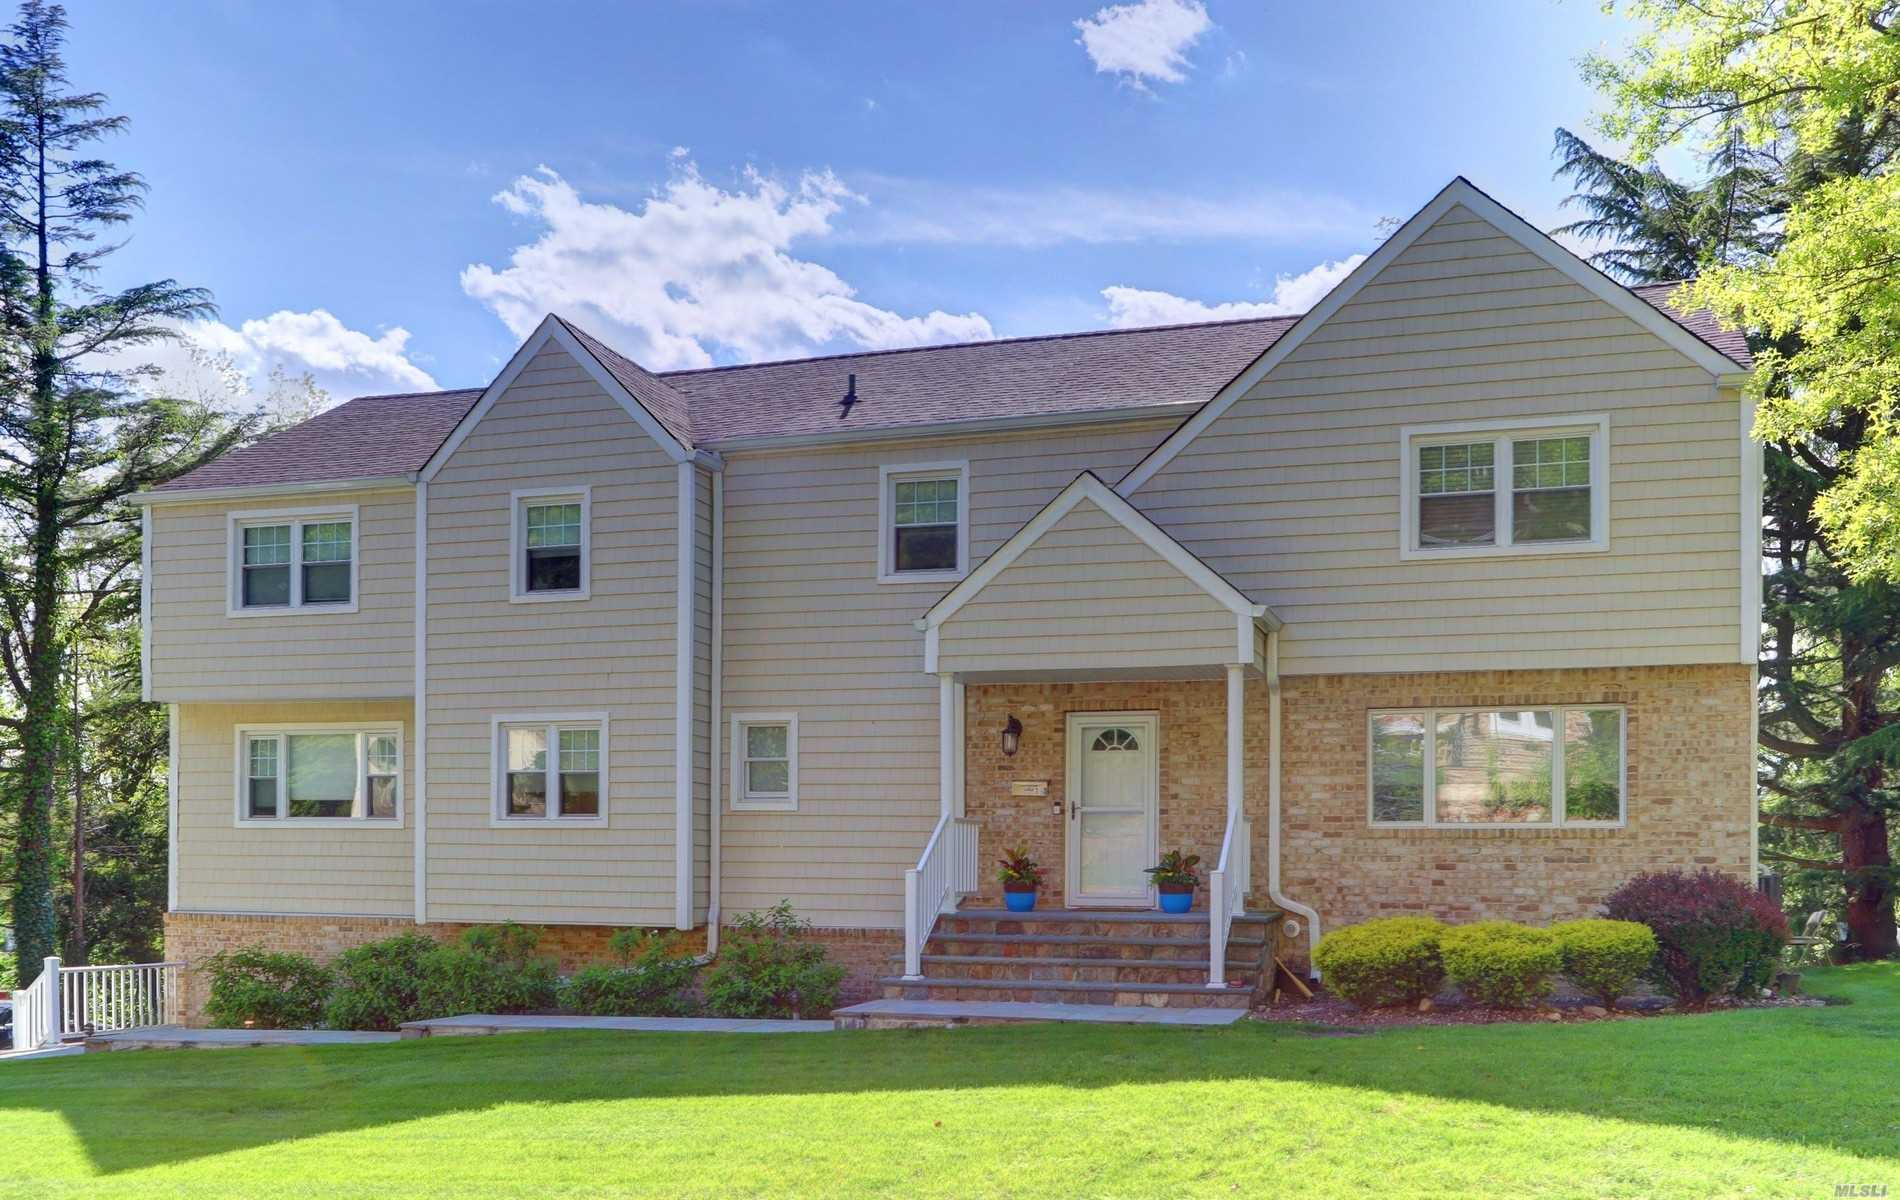 Beautiful home on almost .5 acres of flat useable property. The new TREX deck is conveniently located off the Great Room. Fabulous place to entertain. All new baths and enlarged master bedroom.